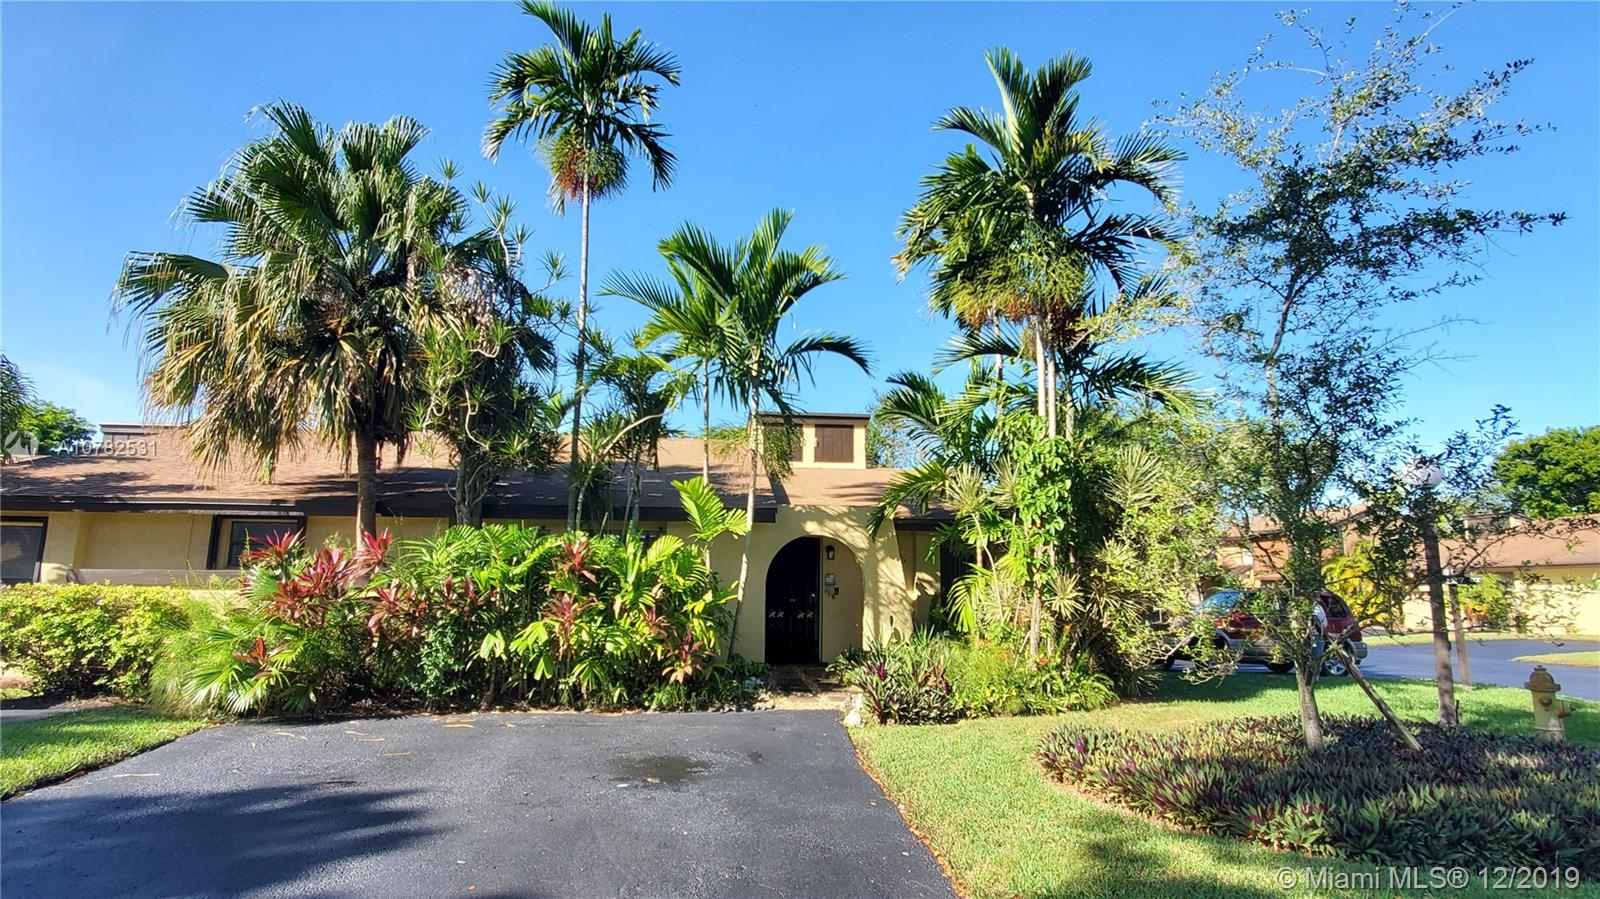 7020 SW 127 CT, Kendall in Miami-dade County County, FL 33183 Home for Sale